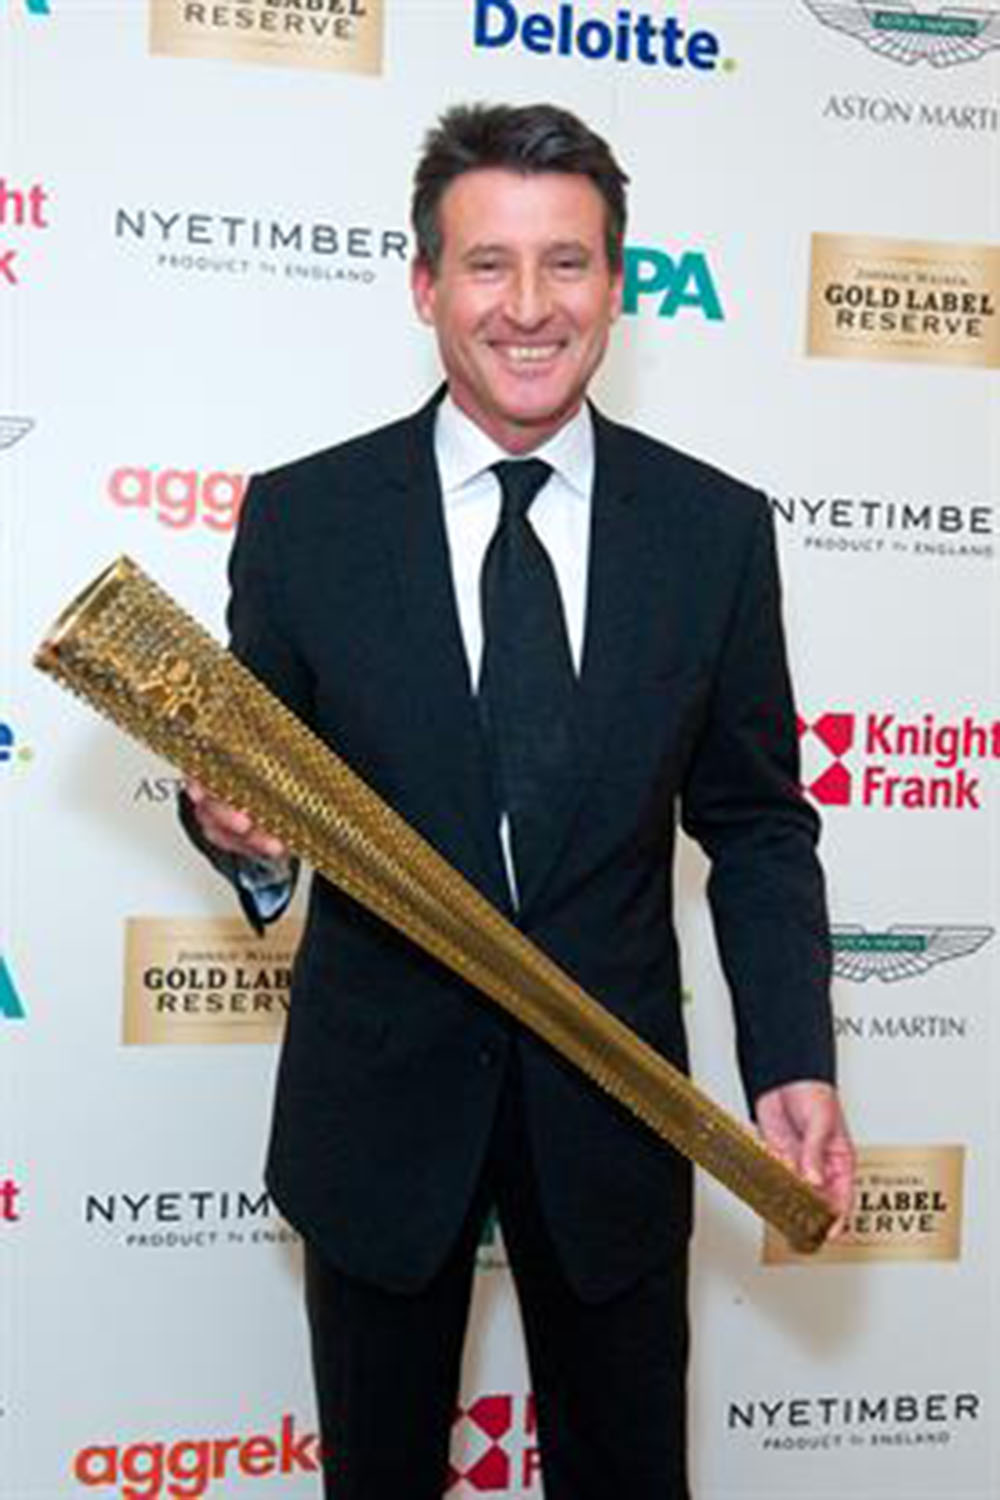 879_14454_Lord Coe and Olympic torch.jpg